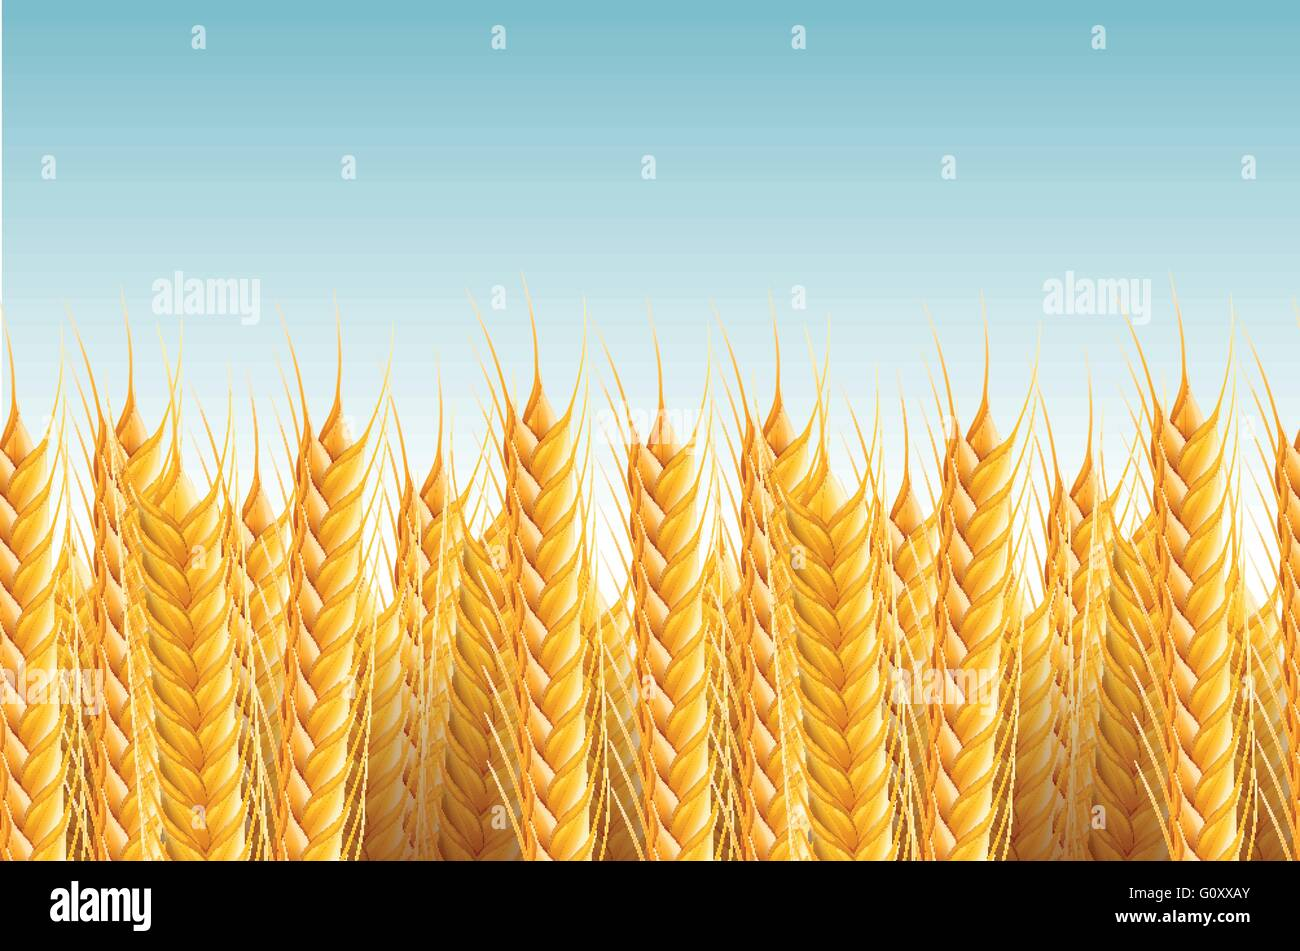 Vector realistic seamless wheat background illustration. - Stock Vector